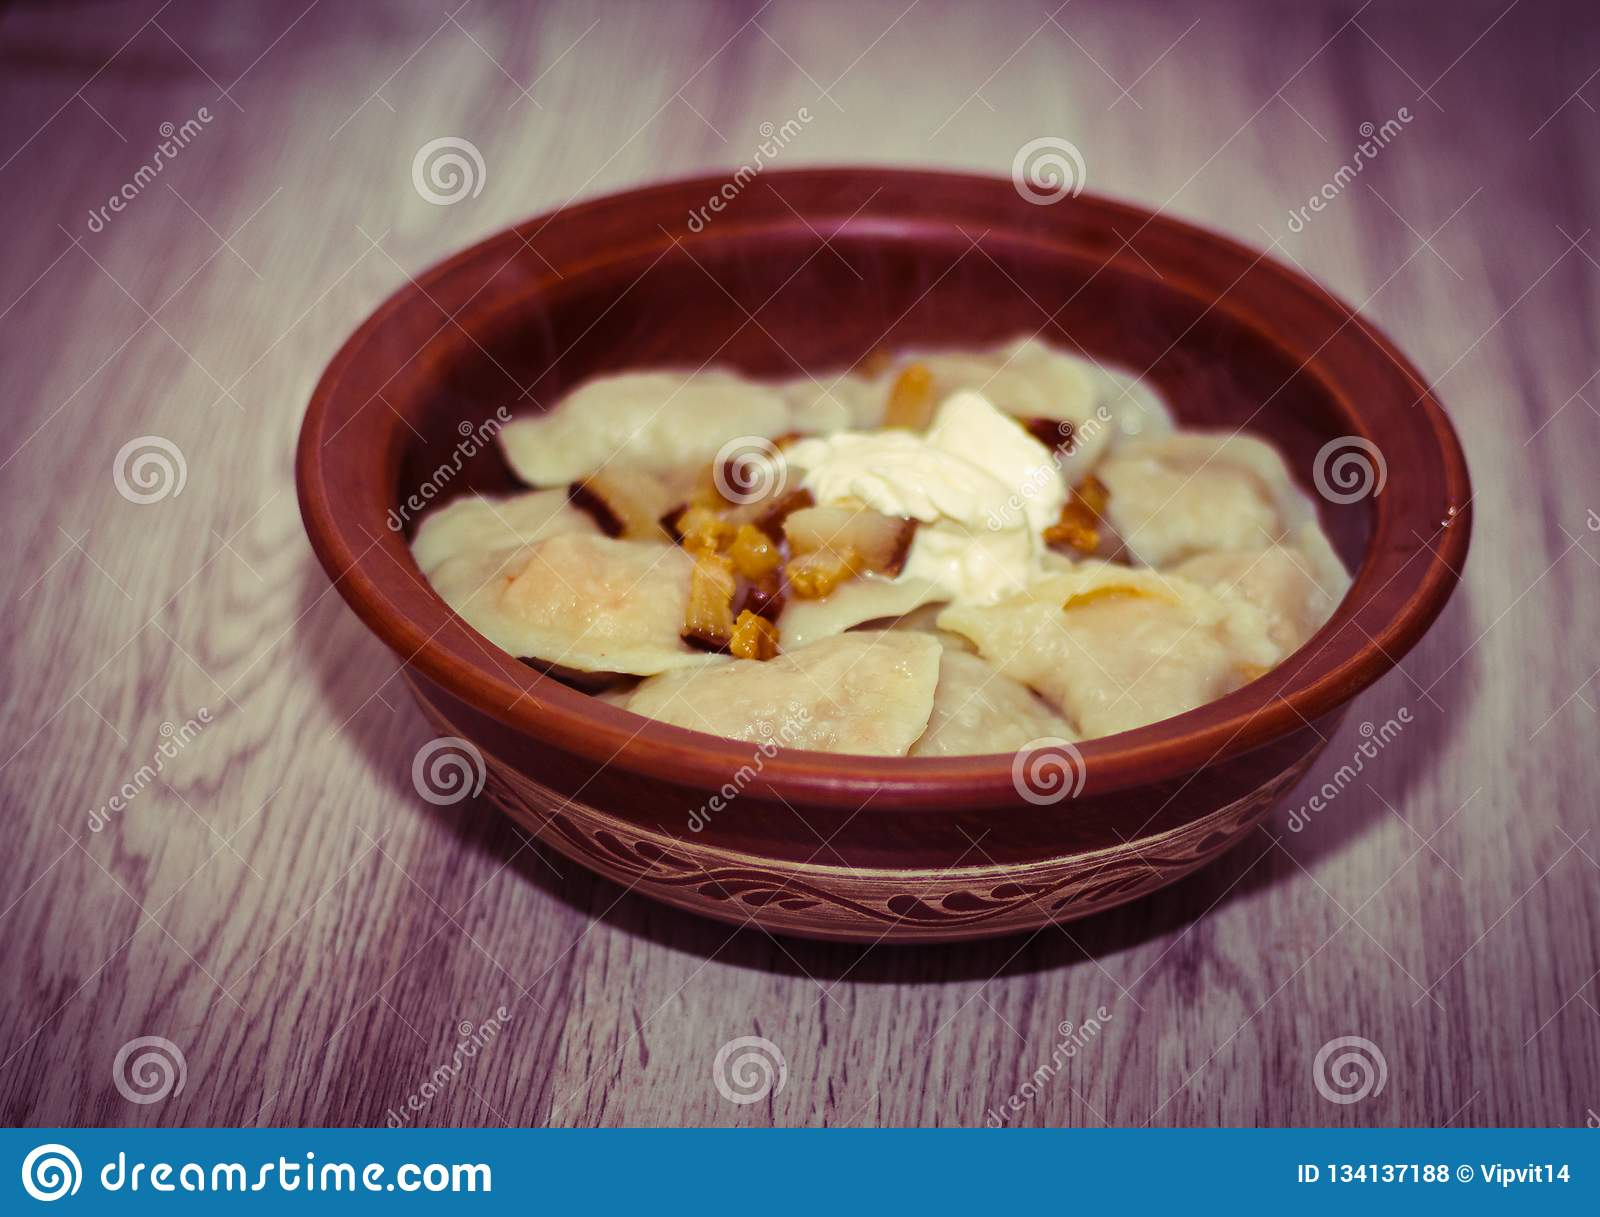 Dumplings in a clay plate on the wooden table. Dumplings, filled with mashed potato. Varenyky, vareniki, pyrohy -